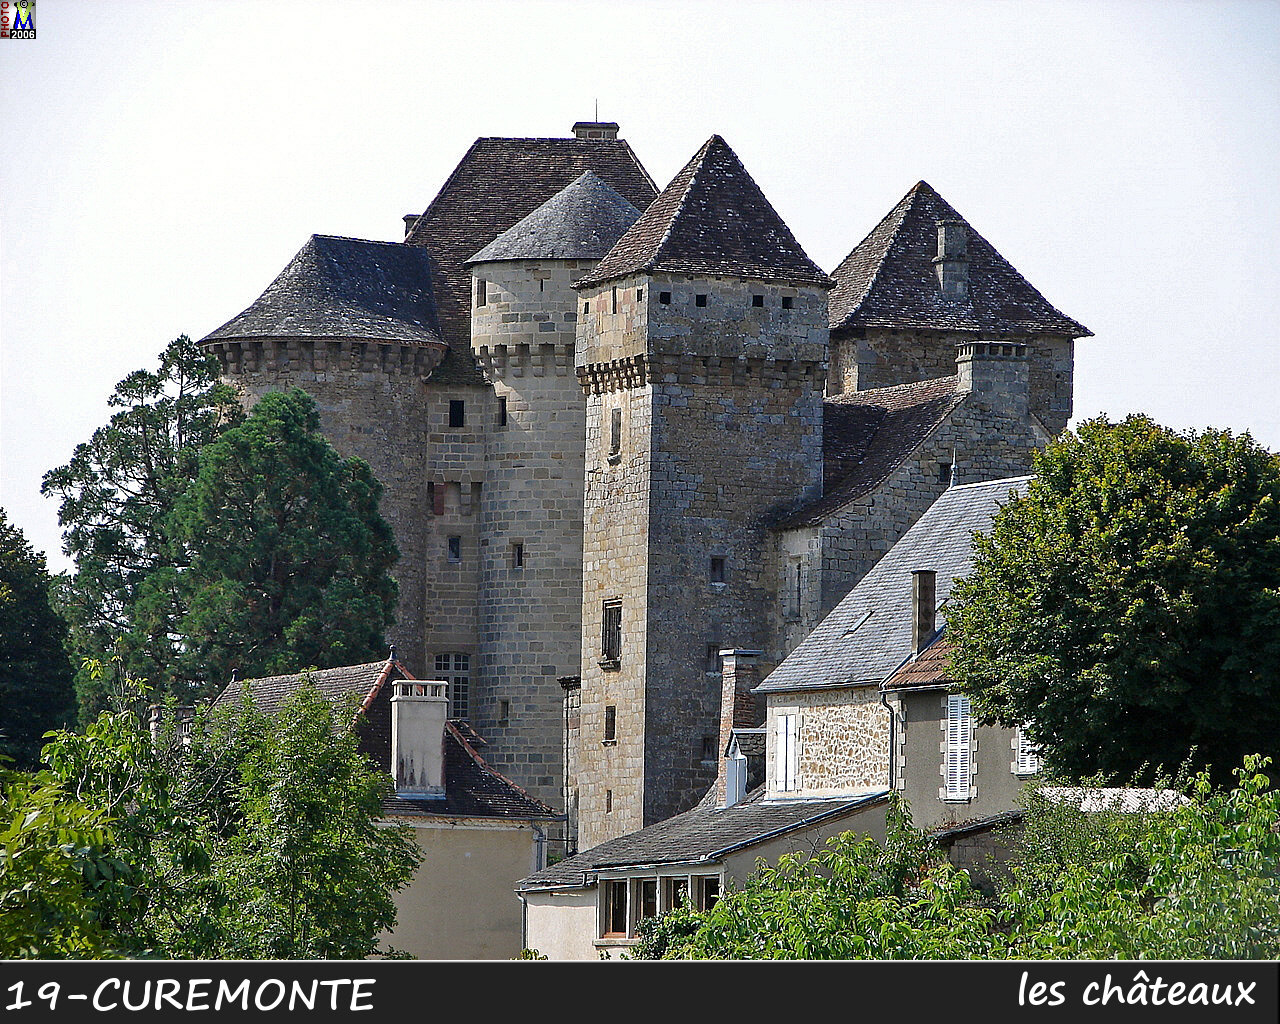 19CUREMONTE_chateau_110.jpg